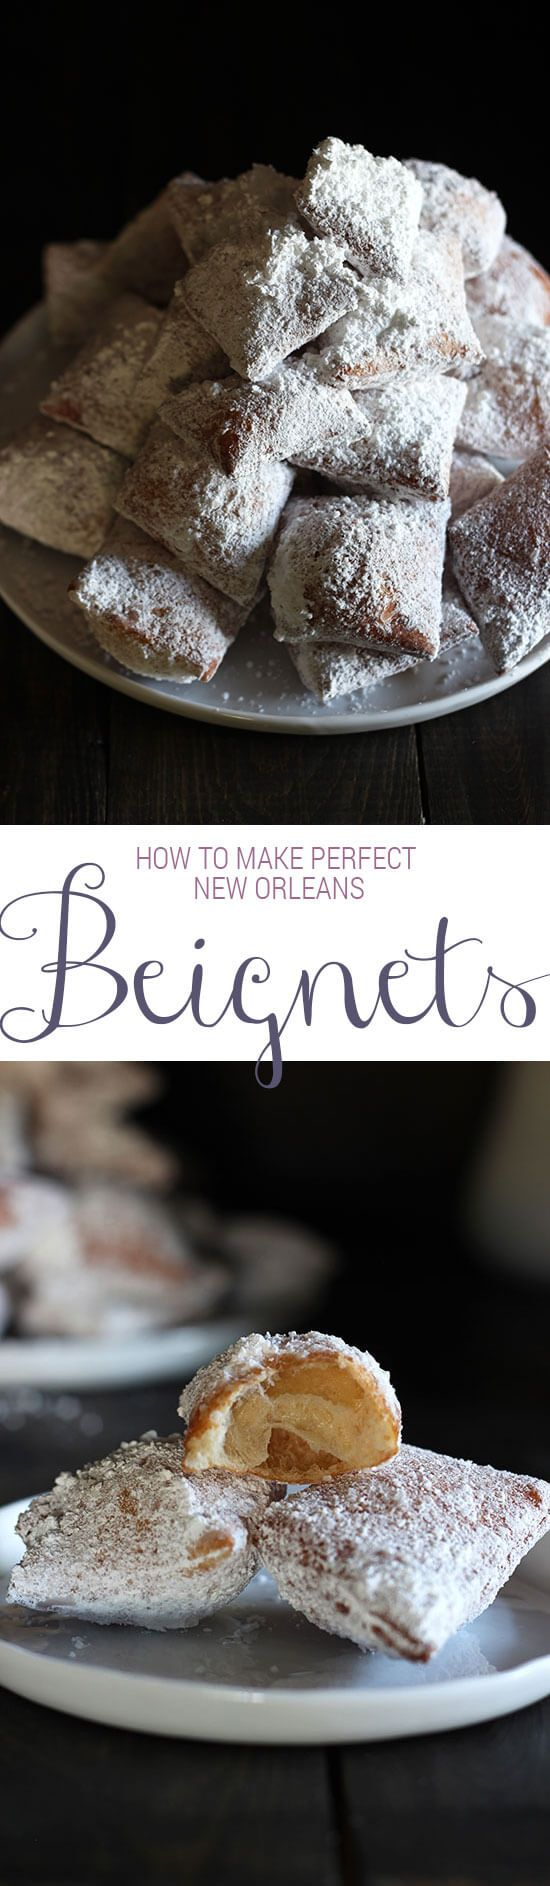 Follow for more>Make PERFECT New Orleans-style beignets right at home! SO SO GOOD. Can be made ahead of time too!